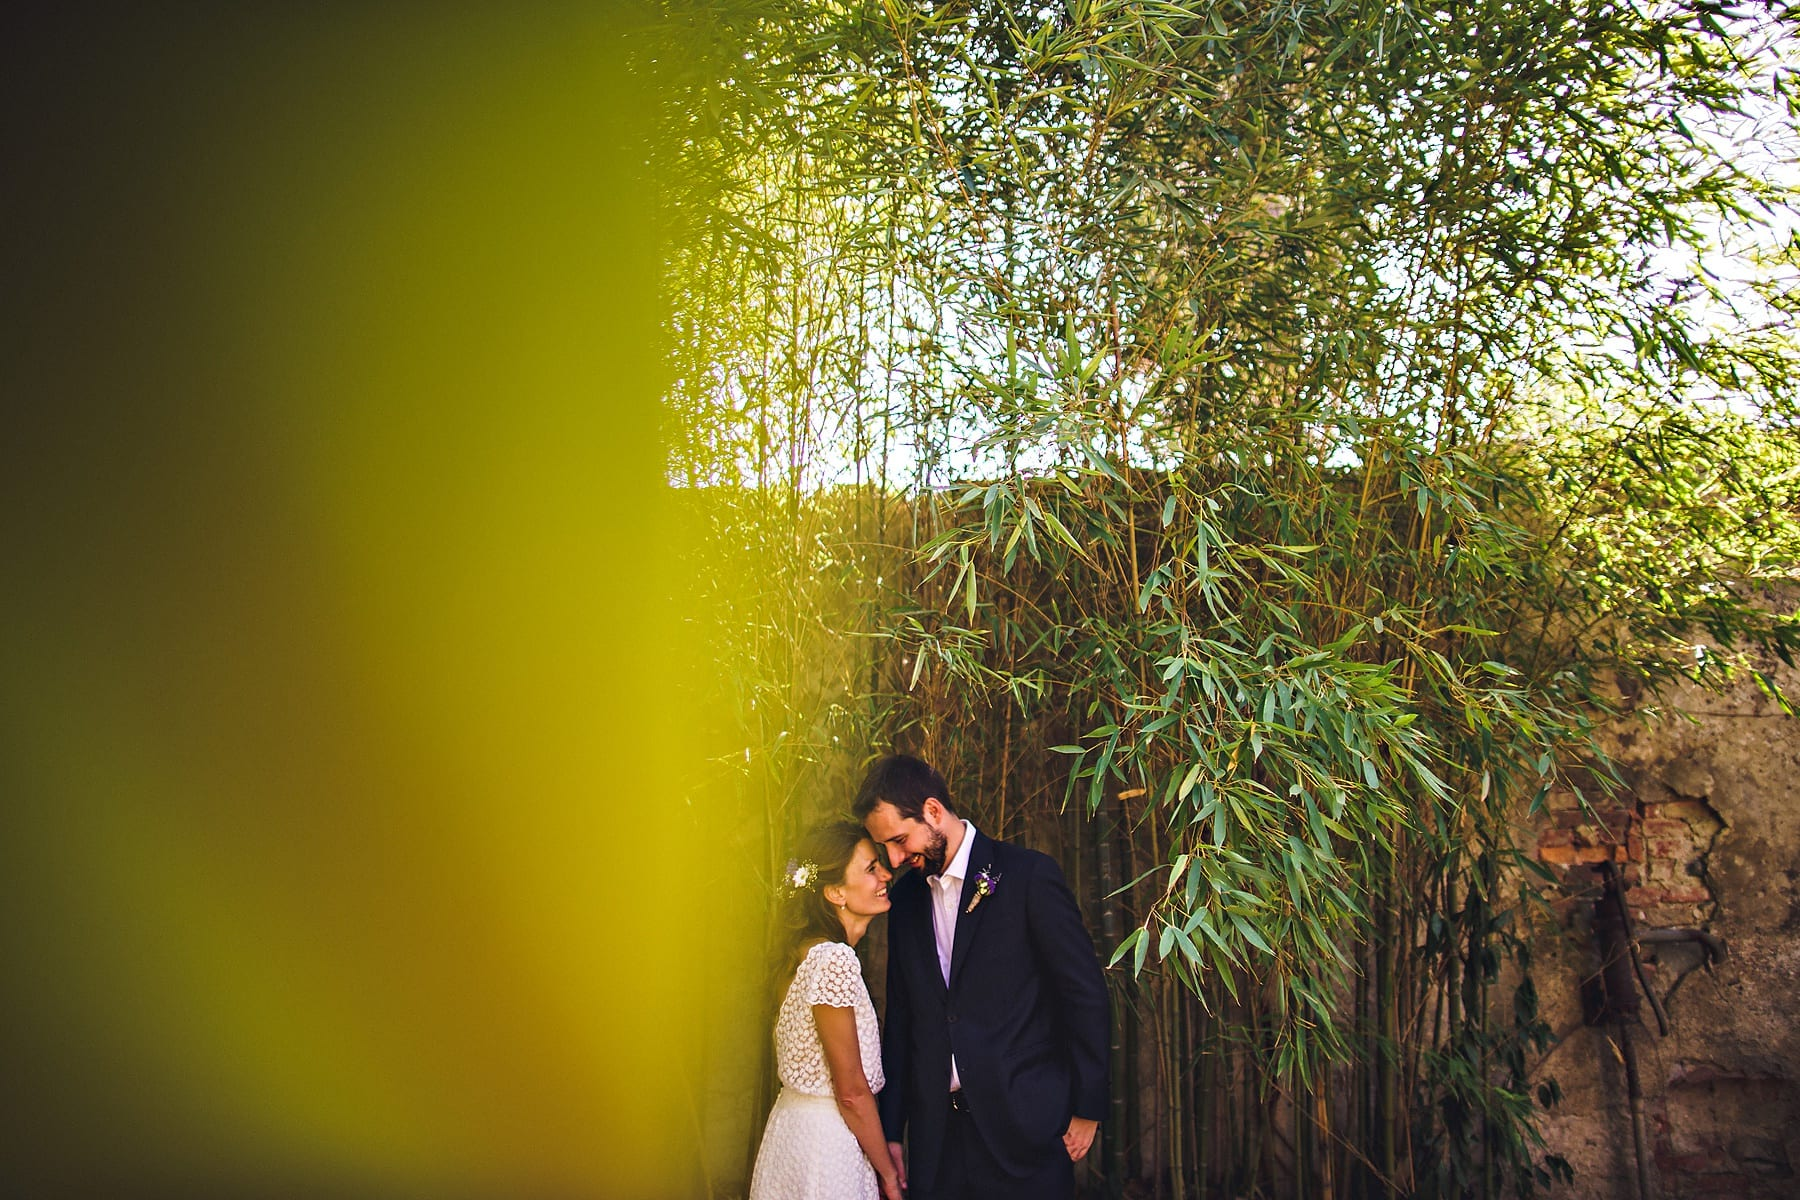 Bride Groom Tenuta La Fratta Tuscany Destination Wedding Photographer,